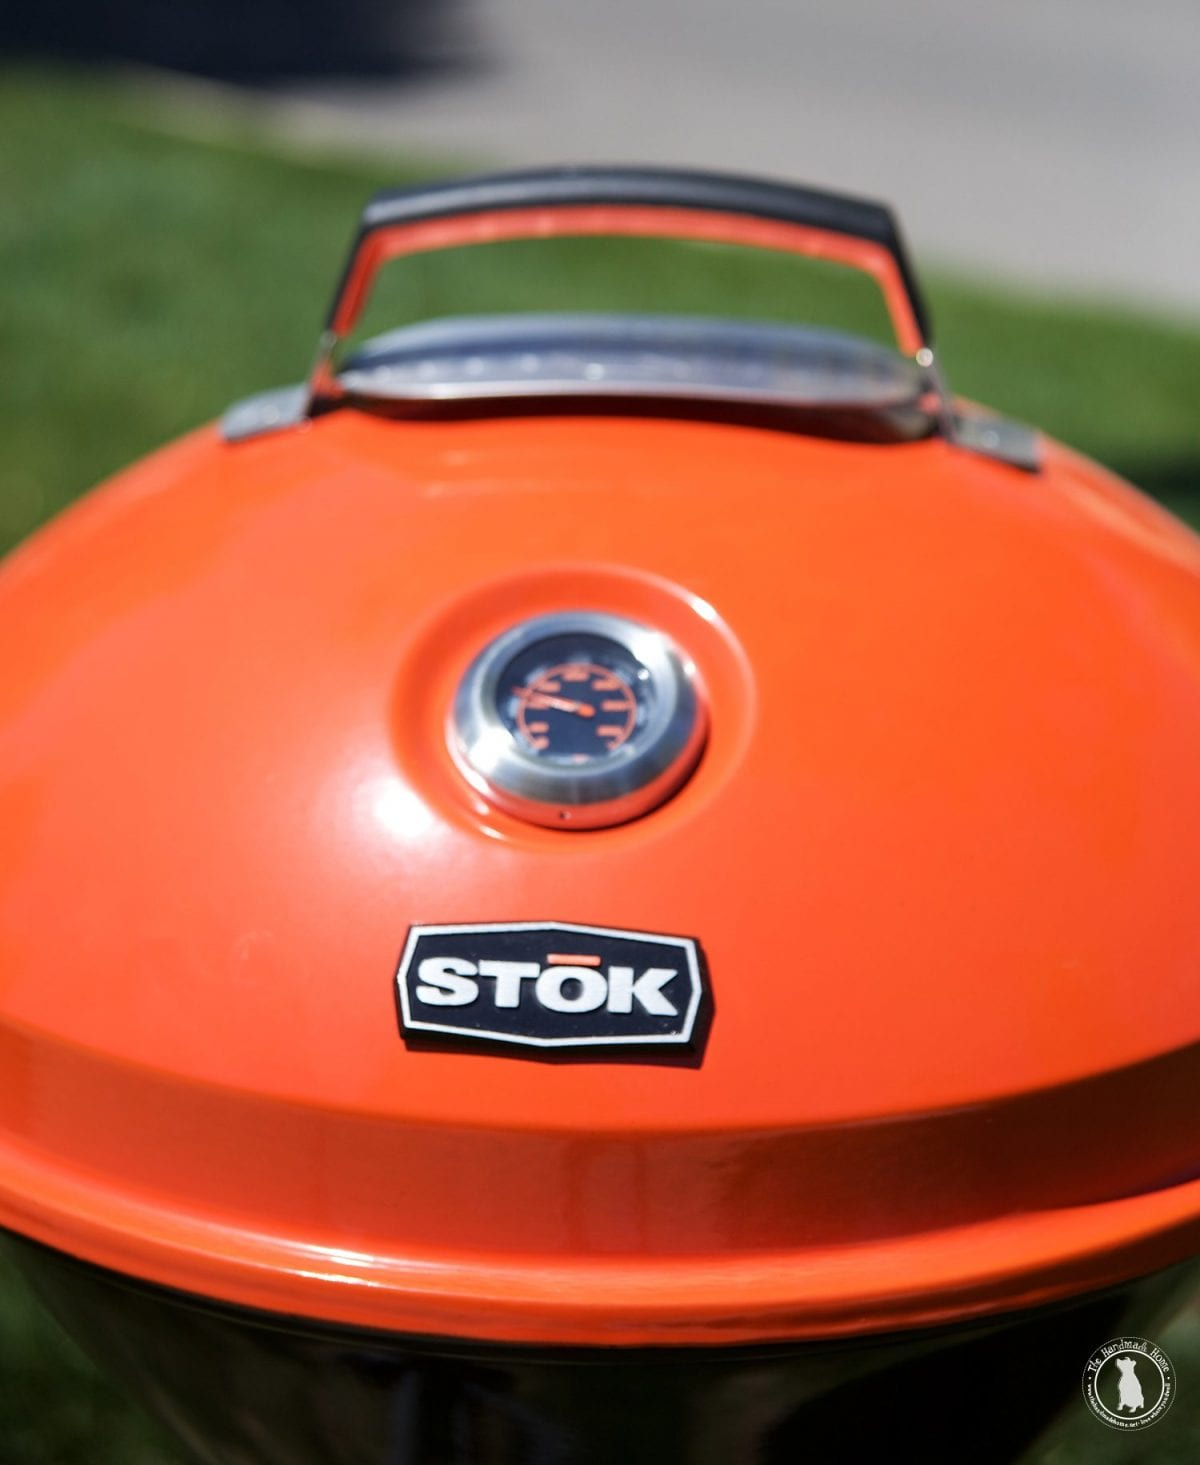 stok_grill